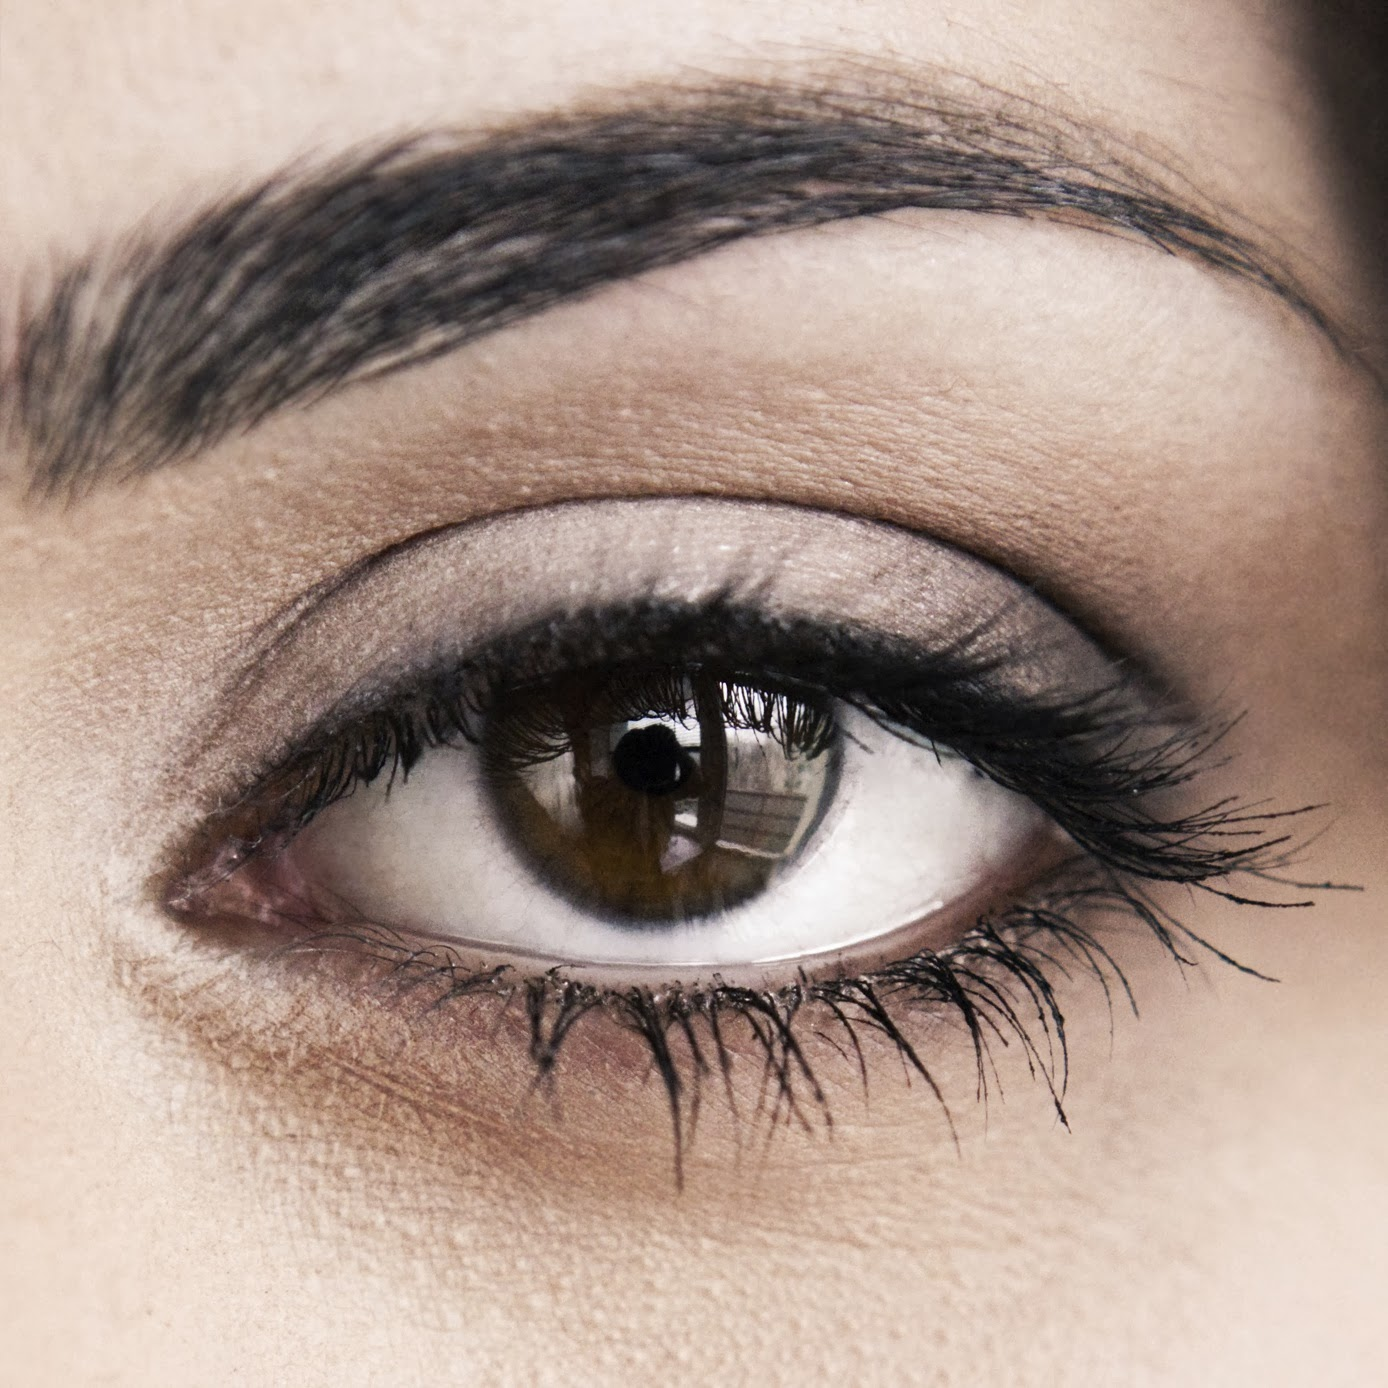 Tattoo Above Eyebrow Meaning: - Free Stock Photos